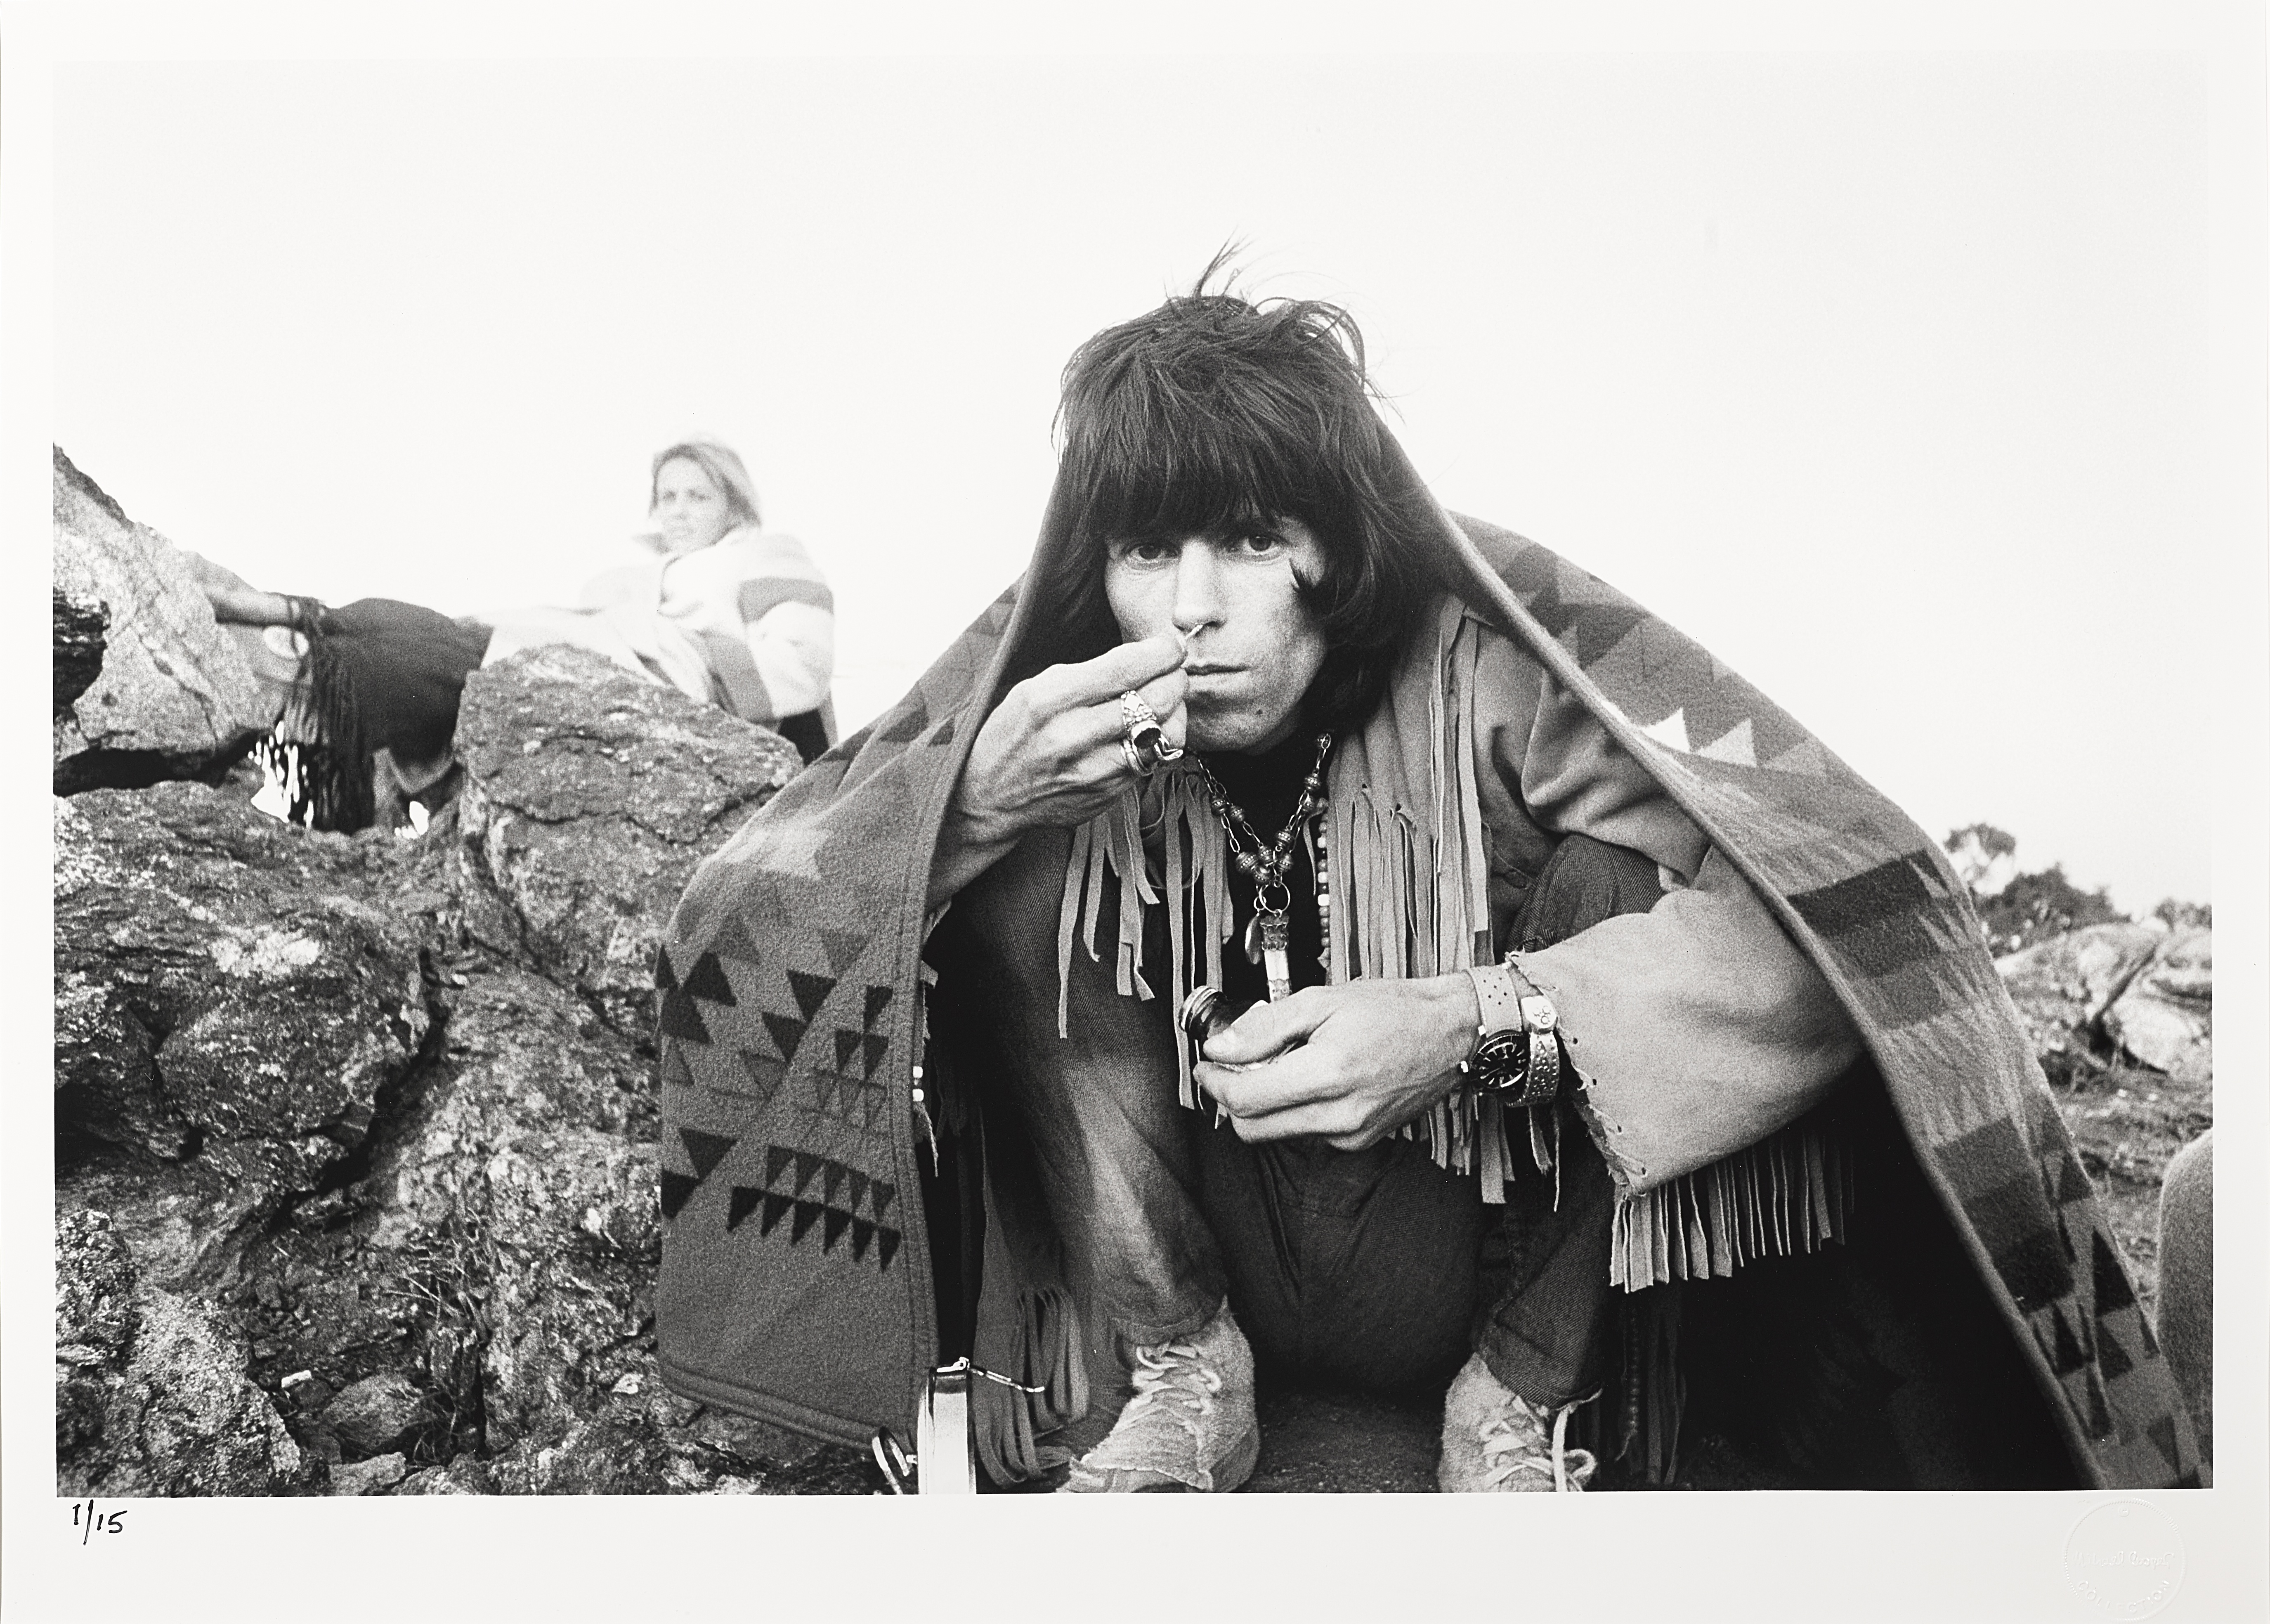 Lot 36 - A Limited Edition Photograph Of Keith Richards Taken At Joshua Tree, CA By Michael Cooper (Briti...